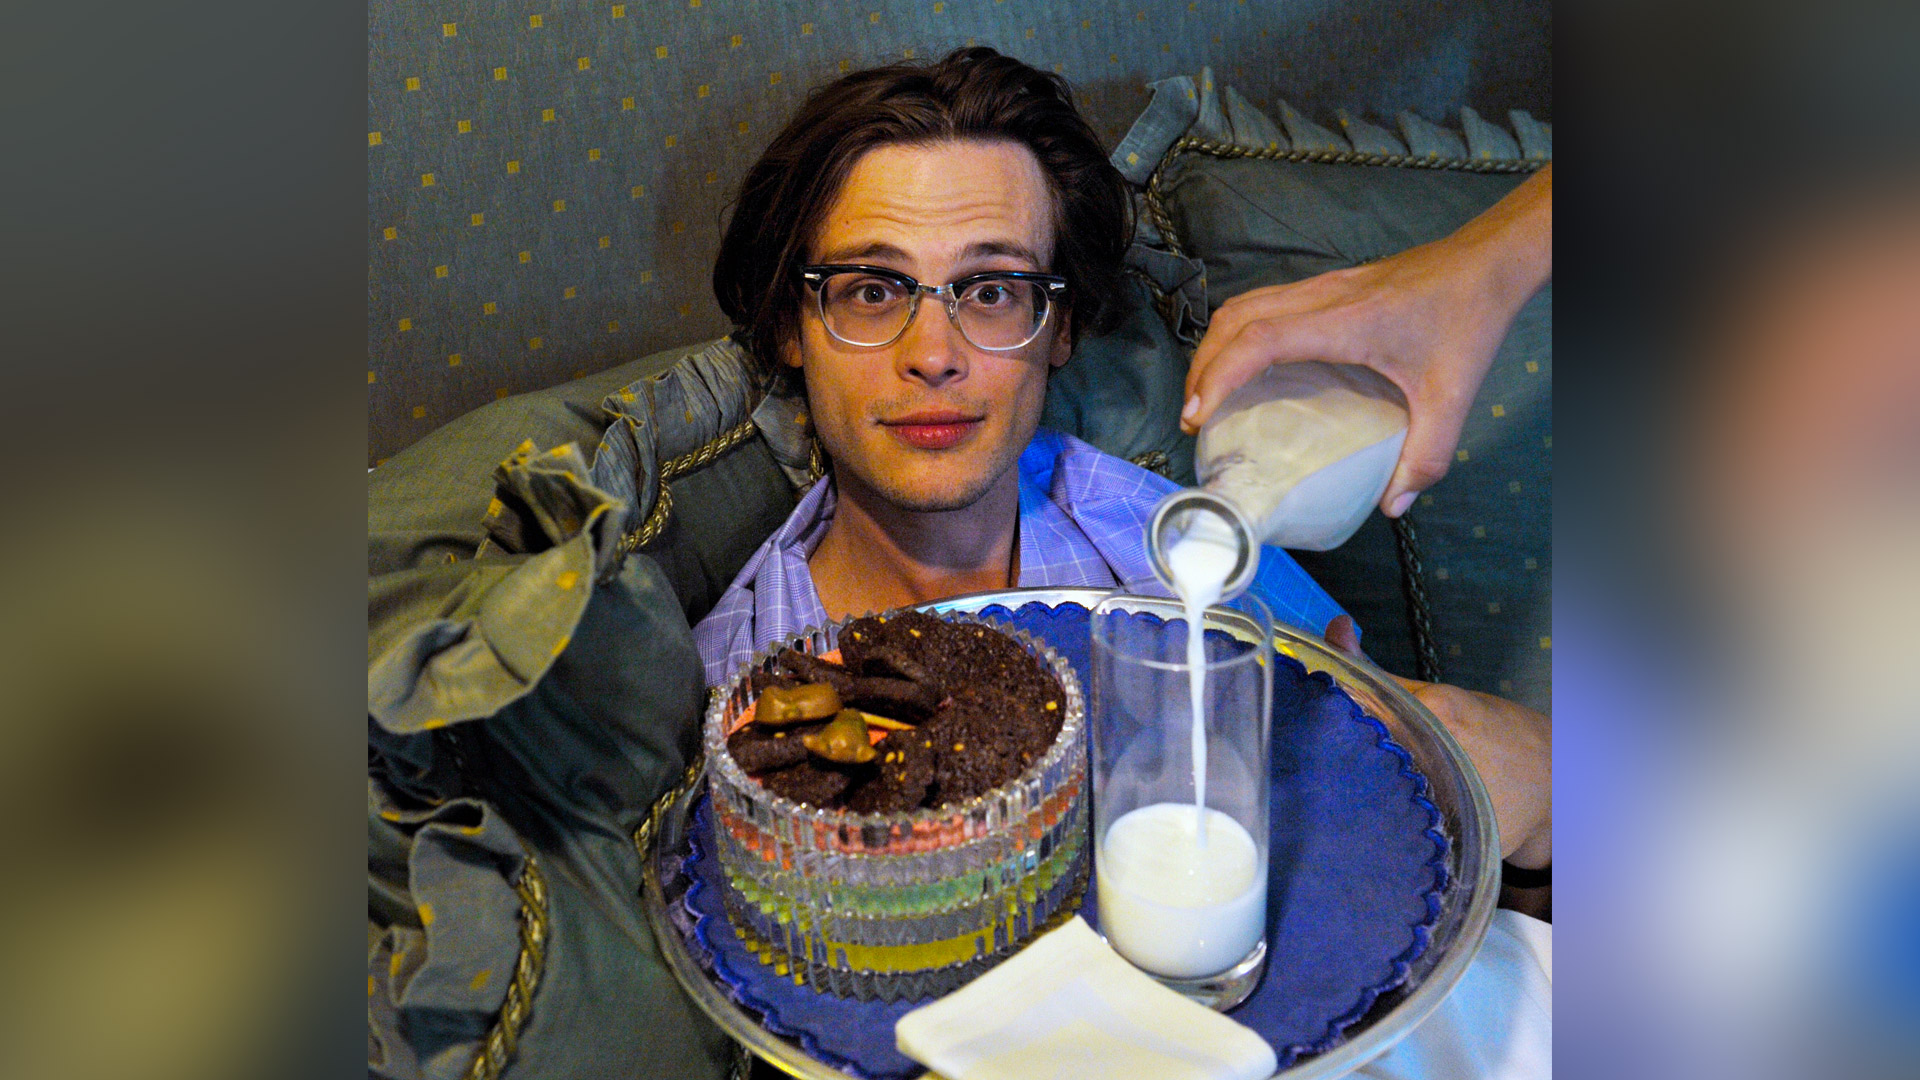 Matthew Gray Gubler has the right idea for a night cap